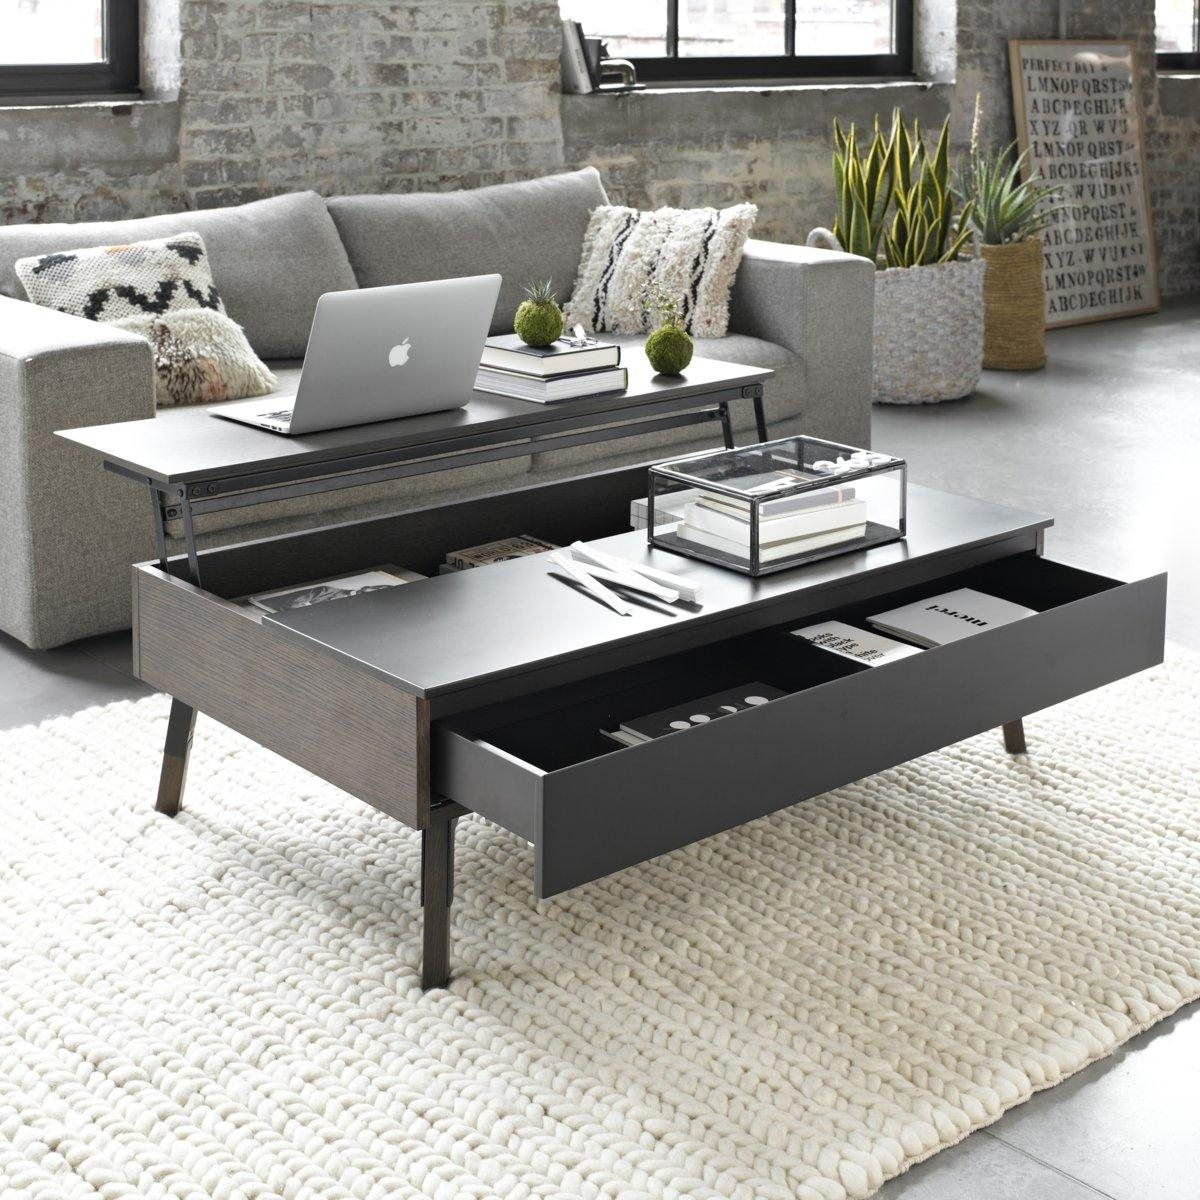 Table Basse Qui Se Transforme En Table Haute Table Basse Irma Plateau Relevable Am Pm Prix Avis Notation